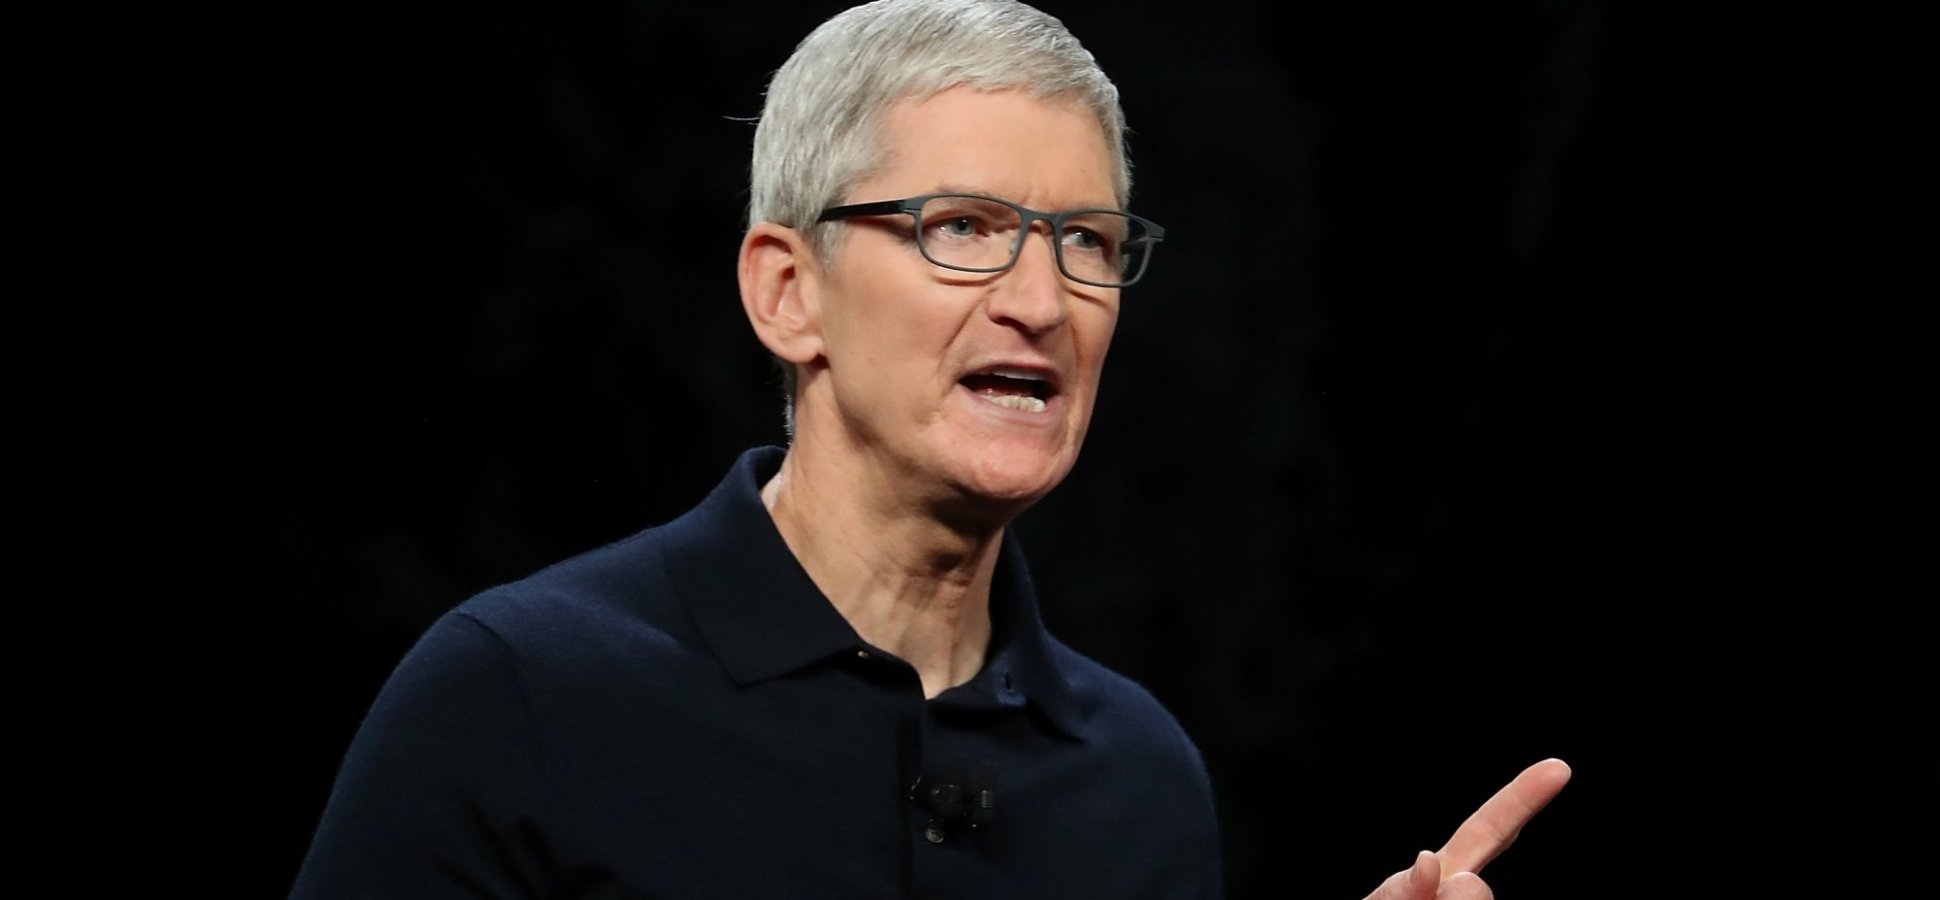 Apple CEO Tim Cook Just Revealed What He Does at 4 in the Morning. Here's Why More Business Leaders Should Do It